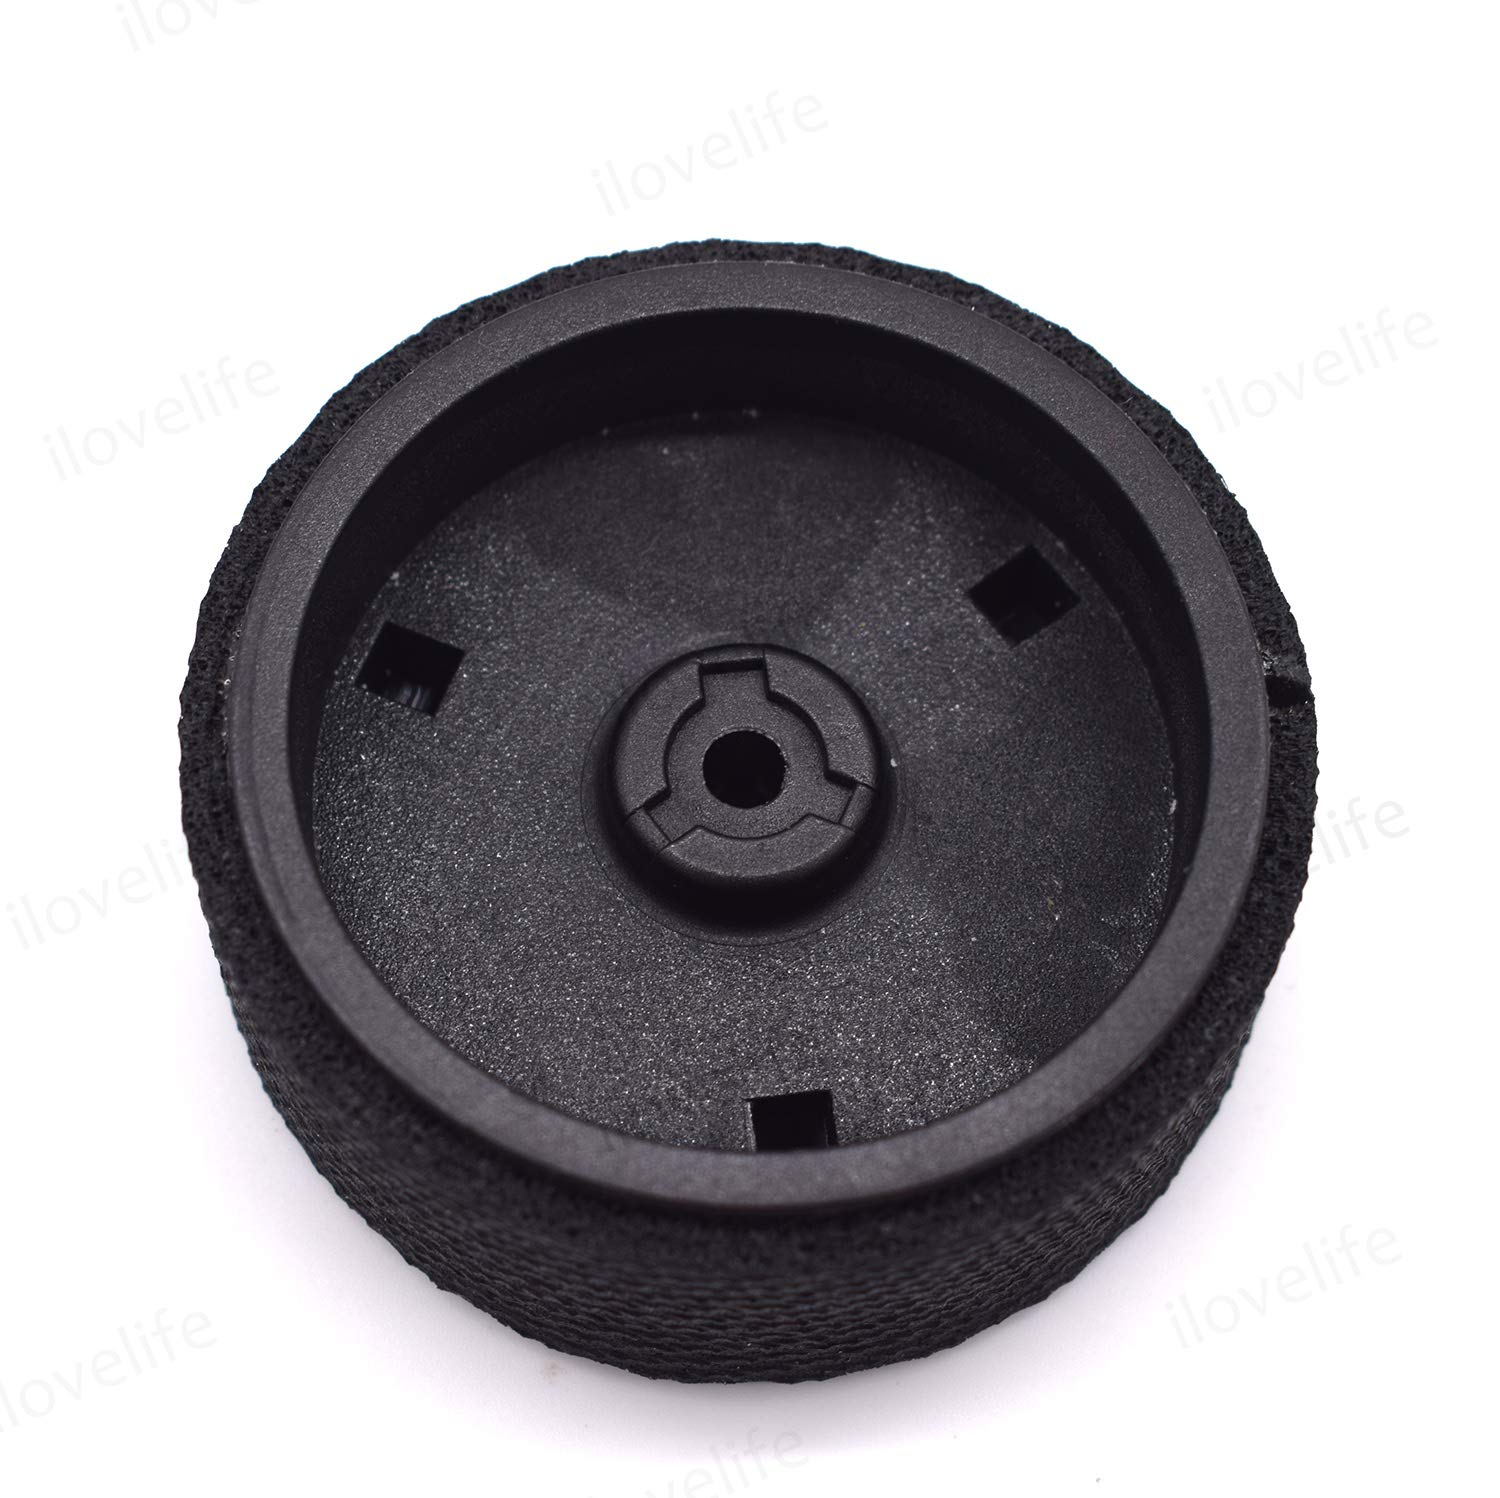 2 Caster Wheels 2 Wheel Tires for iRobot Braava 380 380t 320 Mint 4200 5200C ilovelife Replacement Wheels Tires Parts Kit Replenishment Caster Wheel with Tyres Accessories